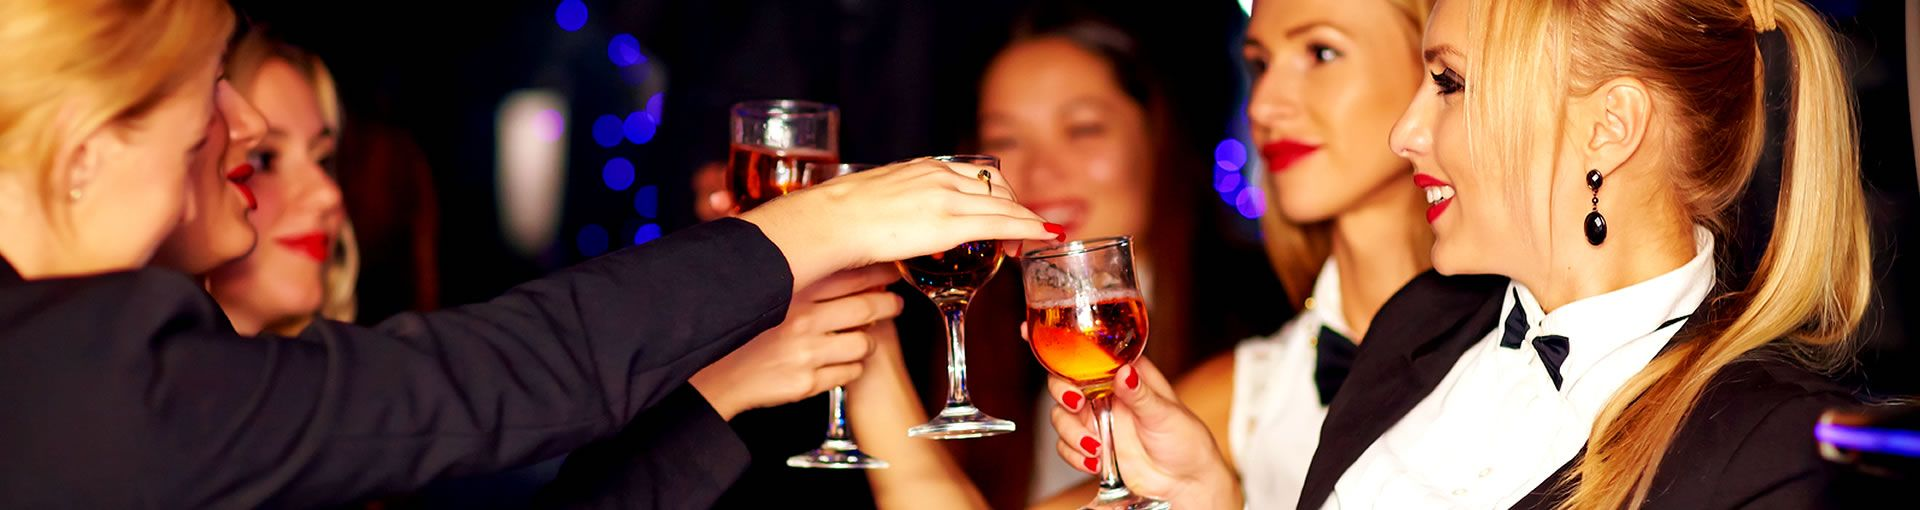 Party Speciais Chicago Bachelor/Bachelorette Parties